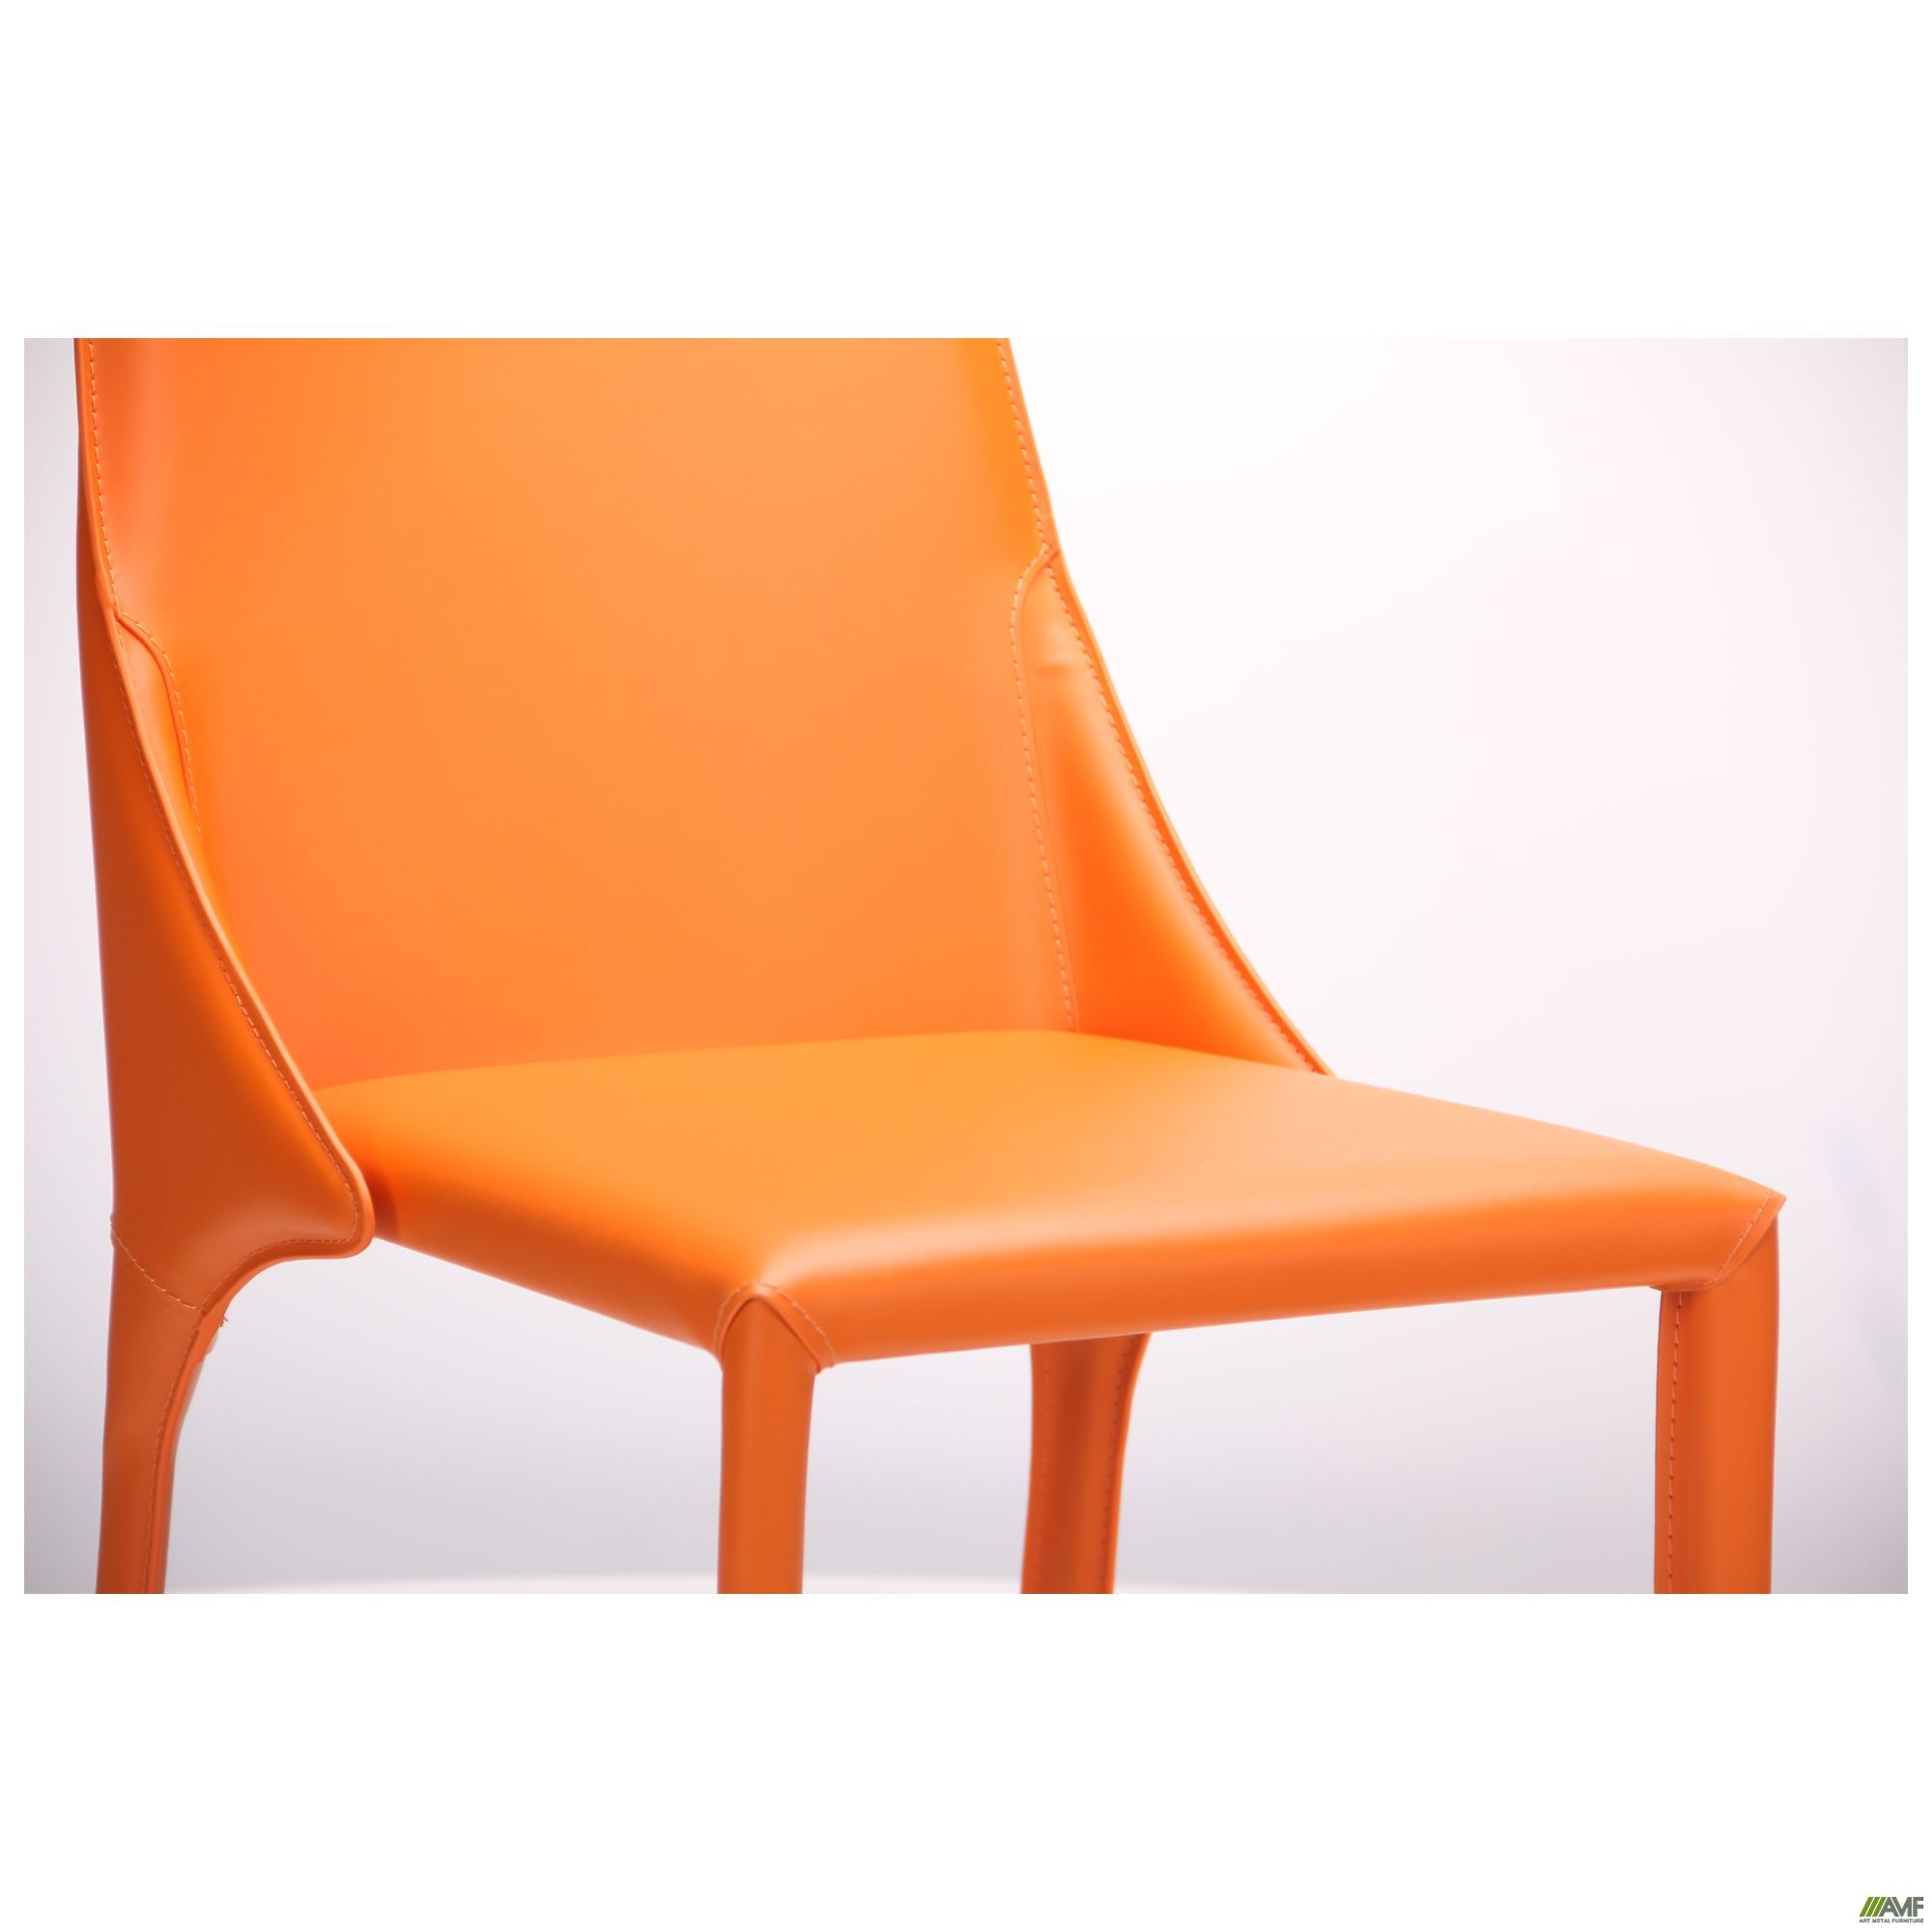 Фото 9 - Стул Artisan orange leather